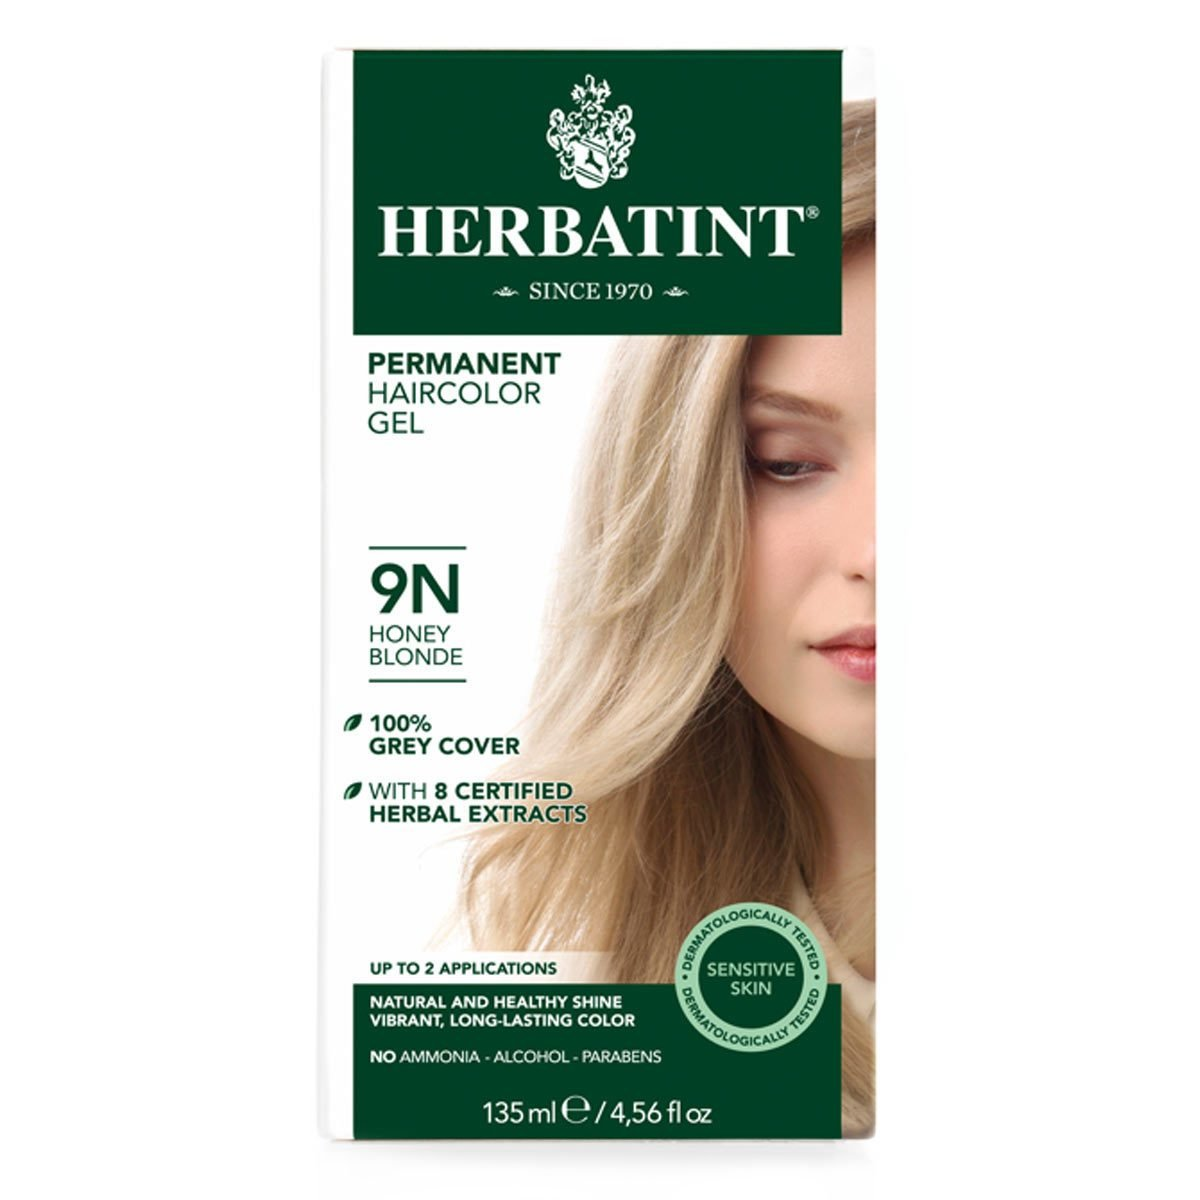 New Herbatint 9N Honey Blonde Permanent Hair Color Gel 12002 Ideas With Pictures